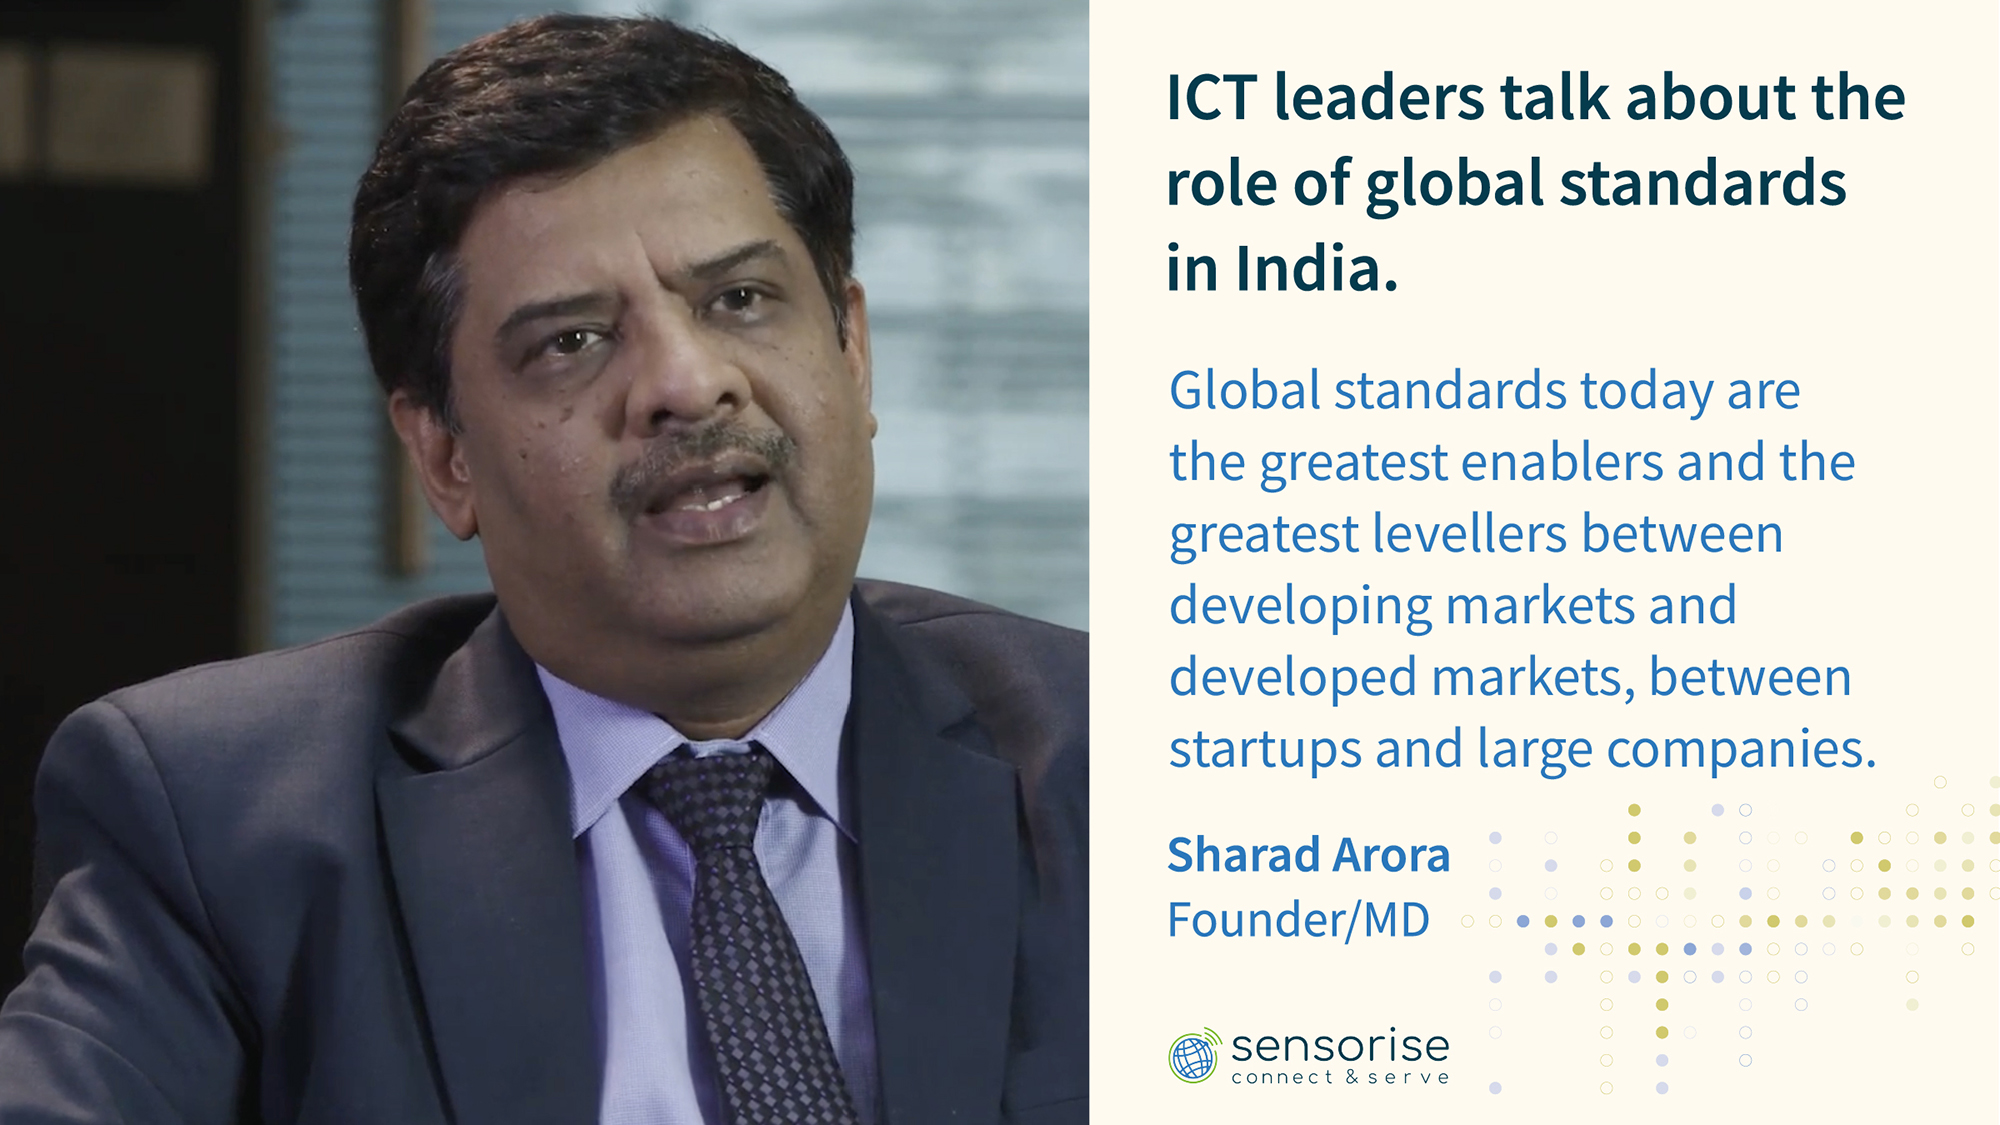 Global standards today are the greatest enablers and the greatest levellers between developing markets and developed markets, between startups and large companies - Sharad Arora, Founder/MD of Sensorise